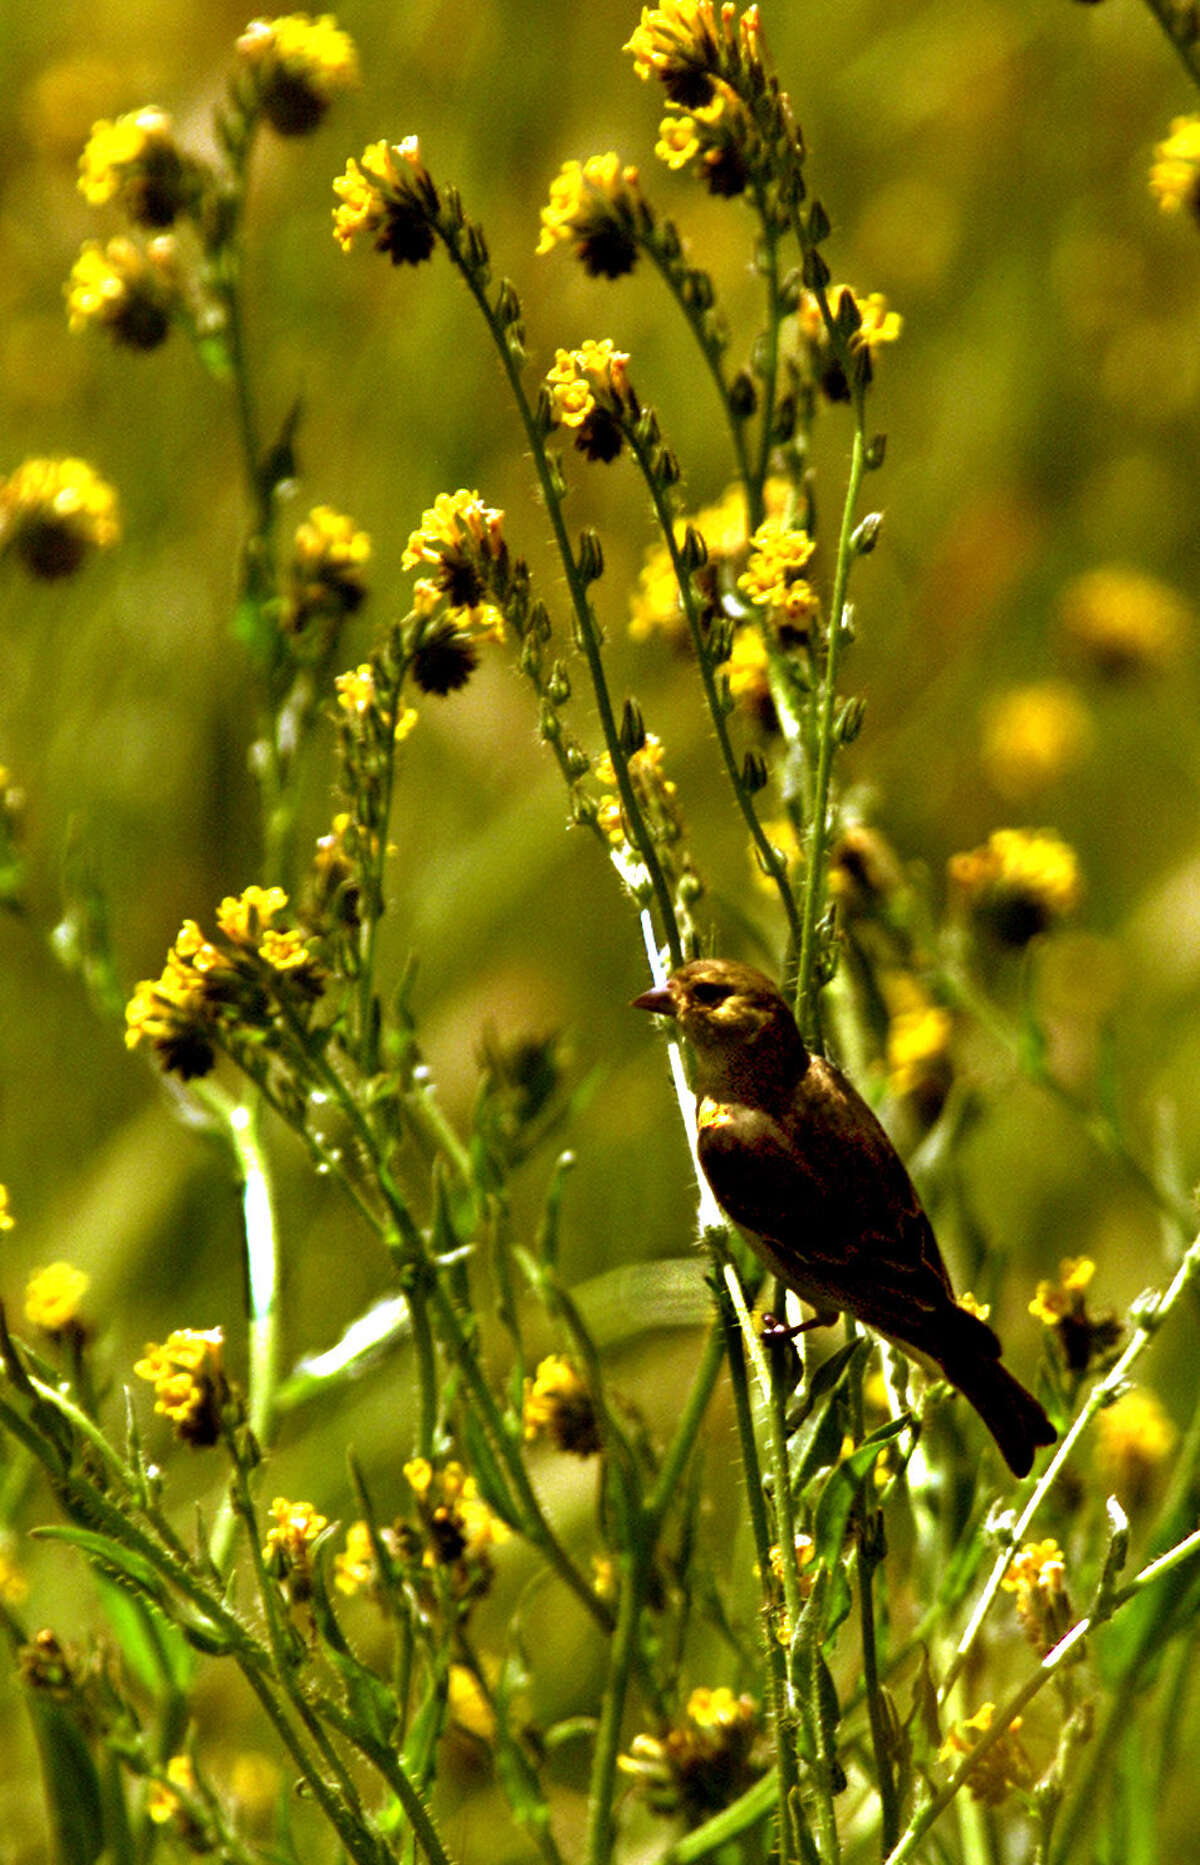 A lesser goldfinch perched on the branch of a Common Fiddleneck (the yellow flower pictured) at Ronald W. Caspers Regional Park.